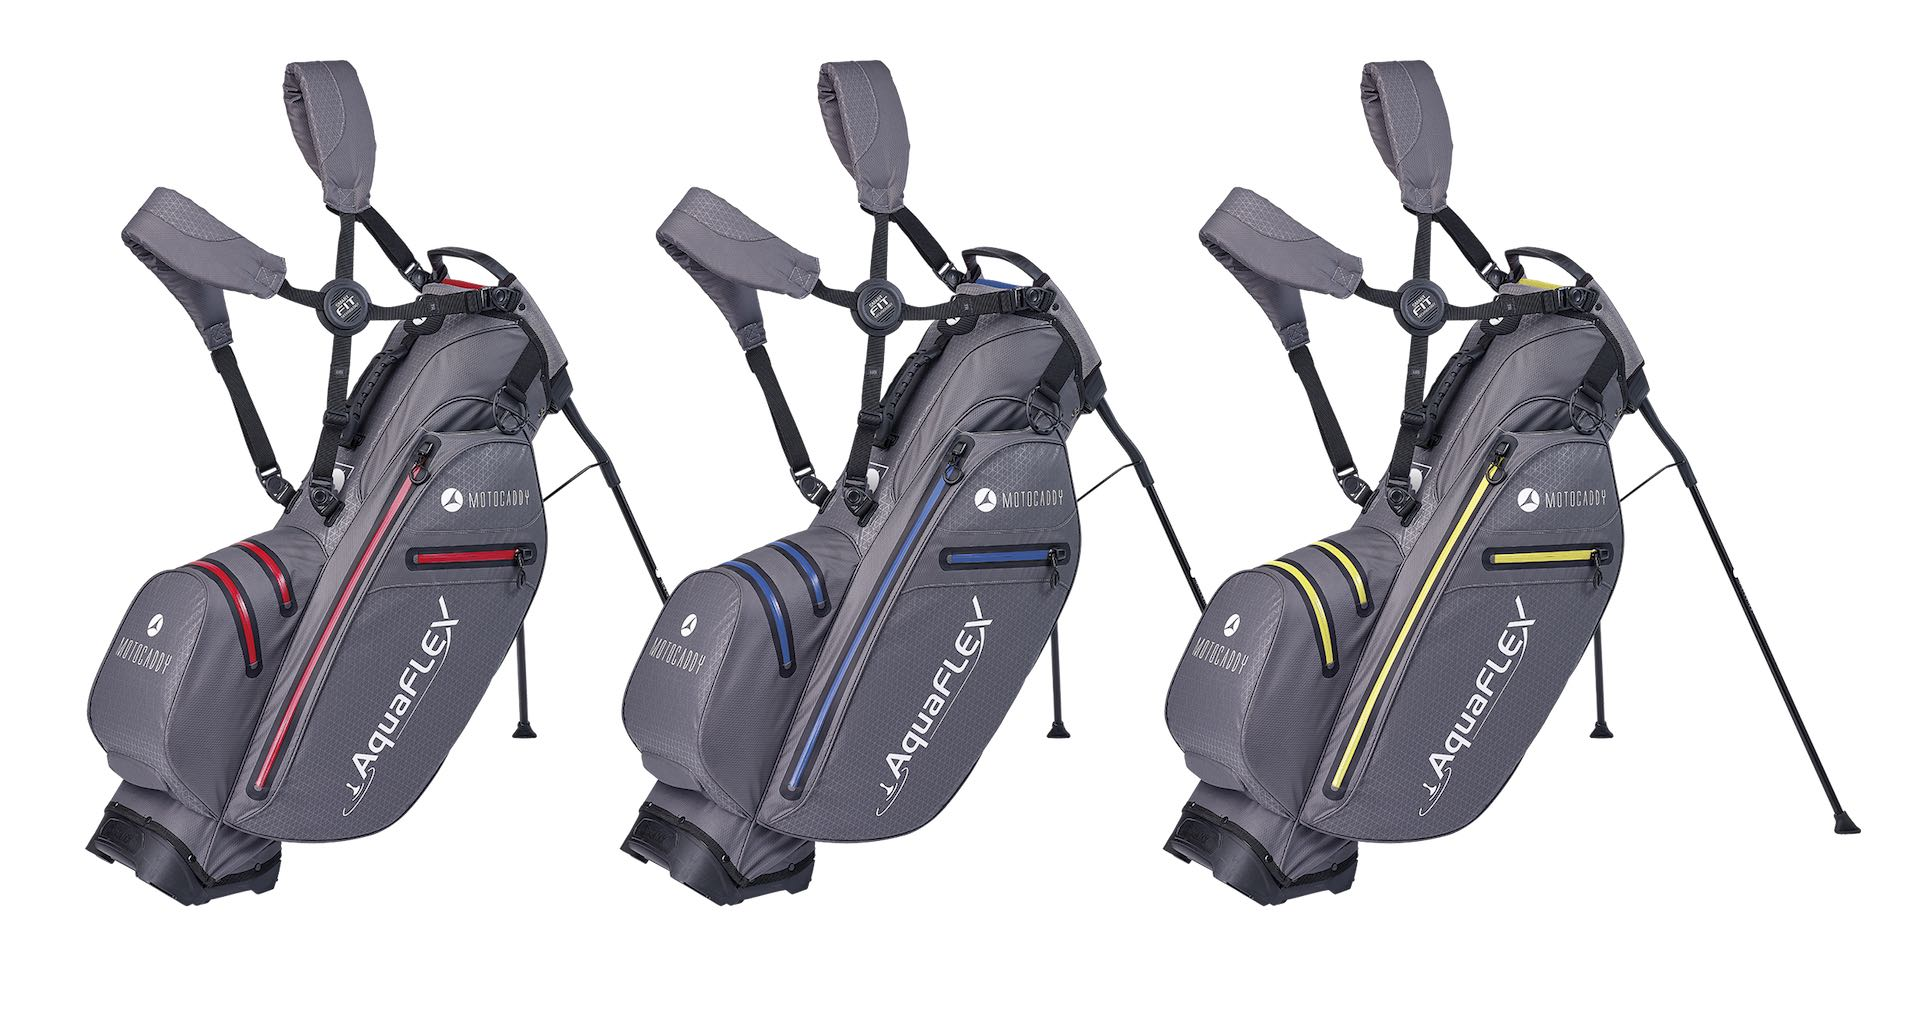 Motocaddy launches revolutionary AquaFLEX stand bag